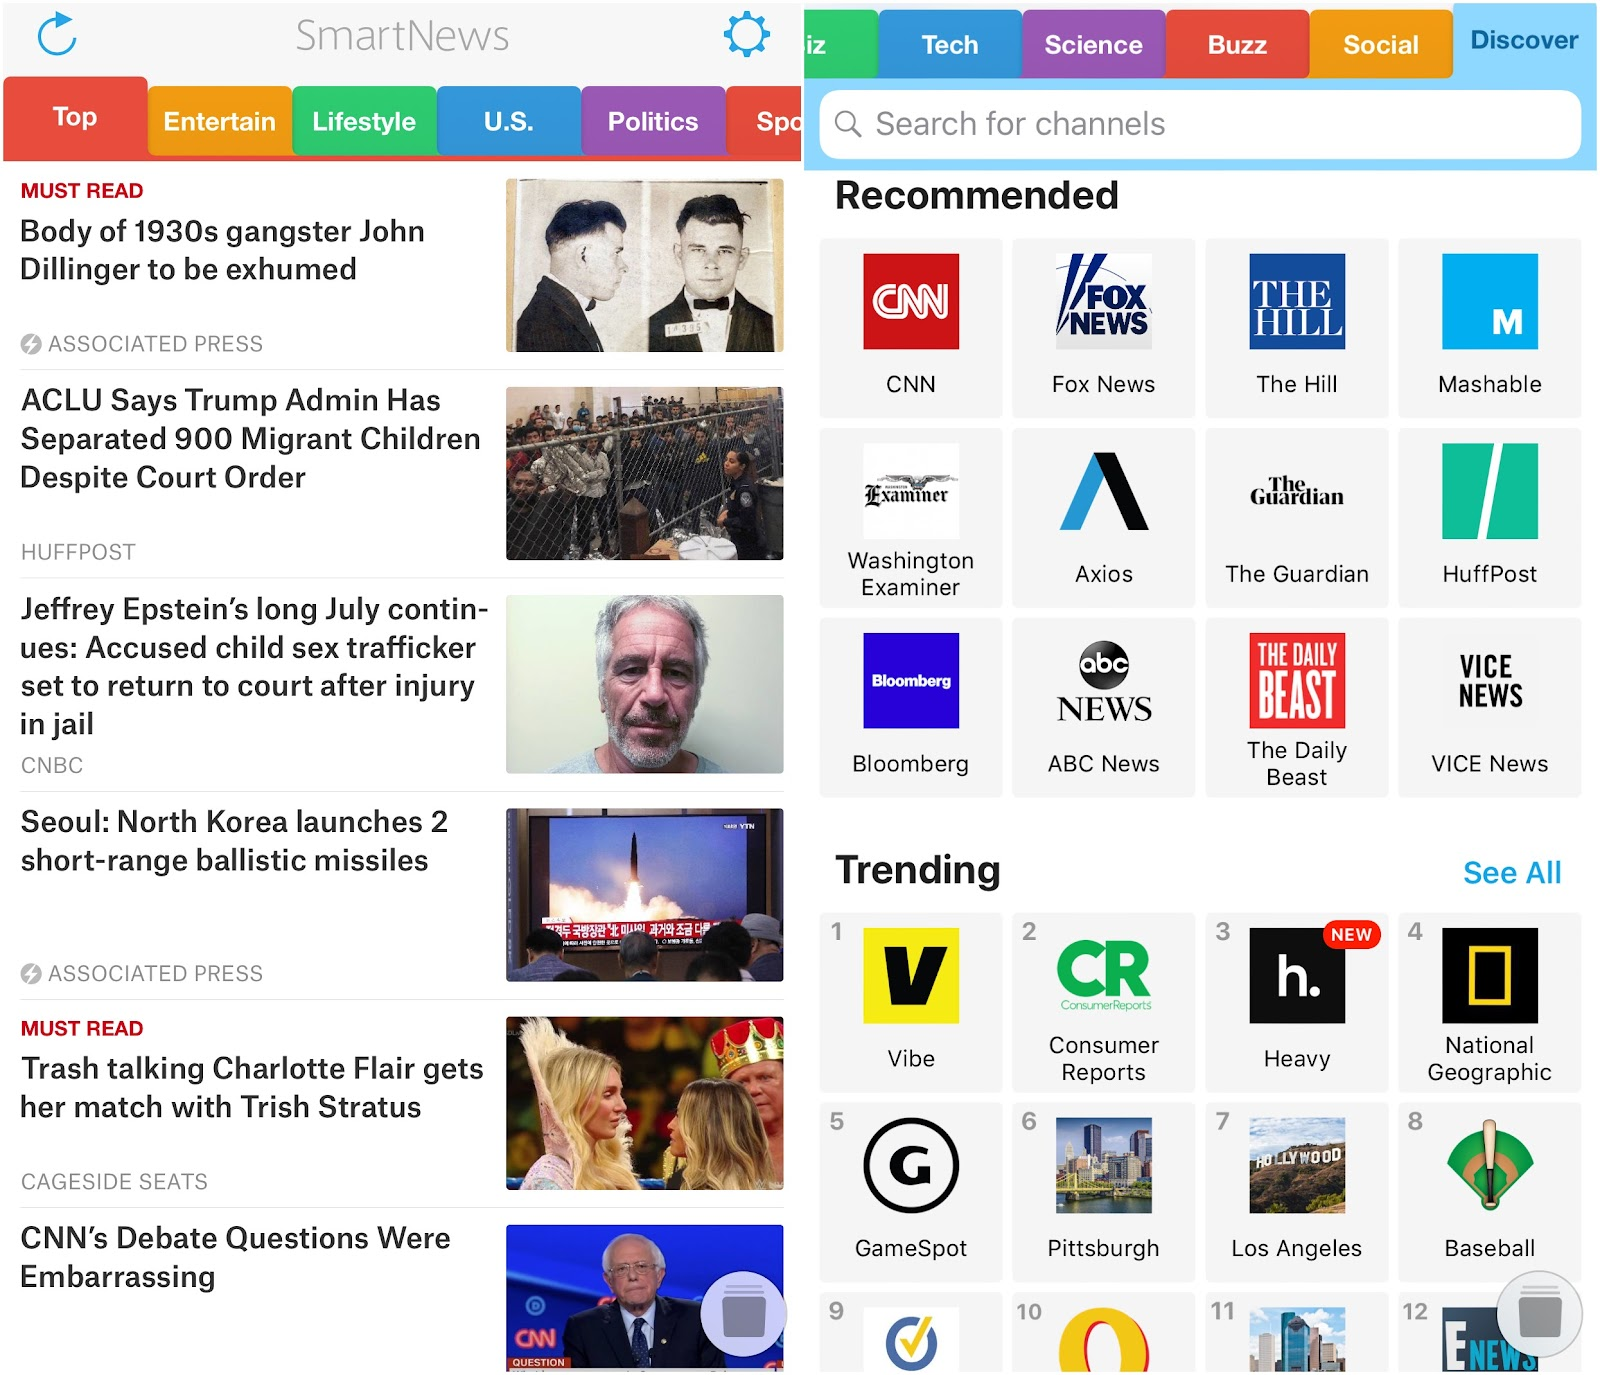 SmartNews, growing 145% yearly, drives more traffic to